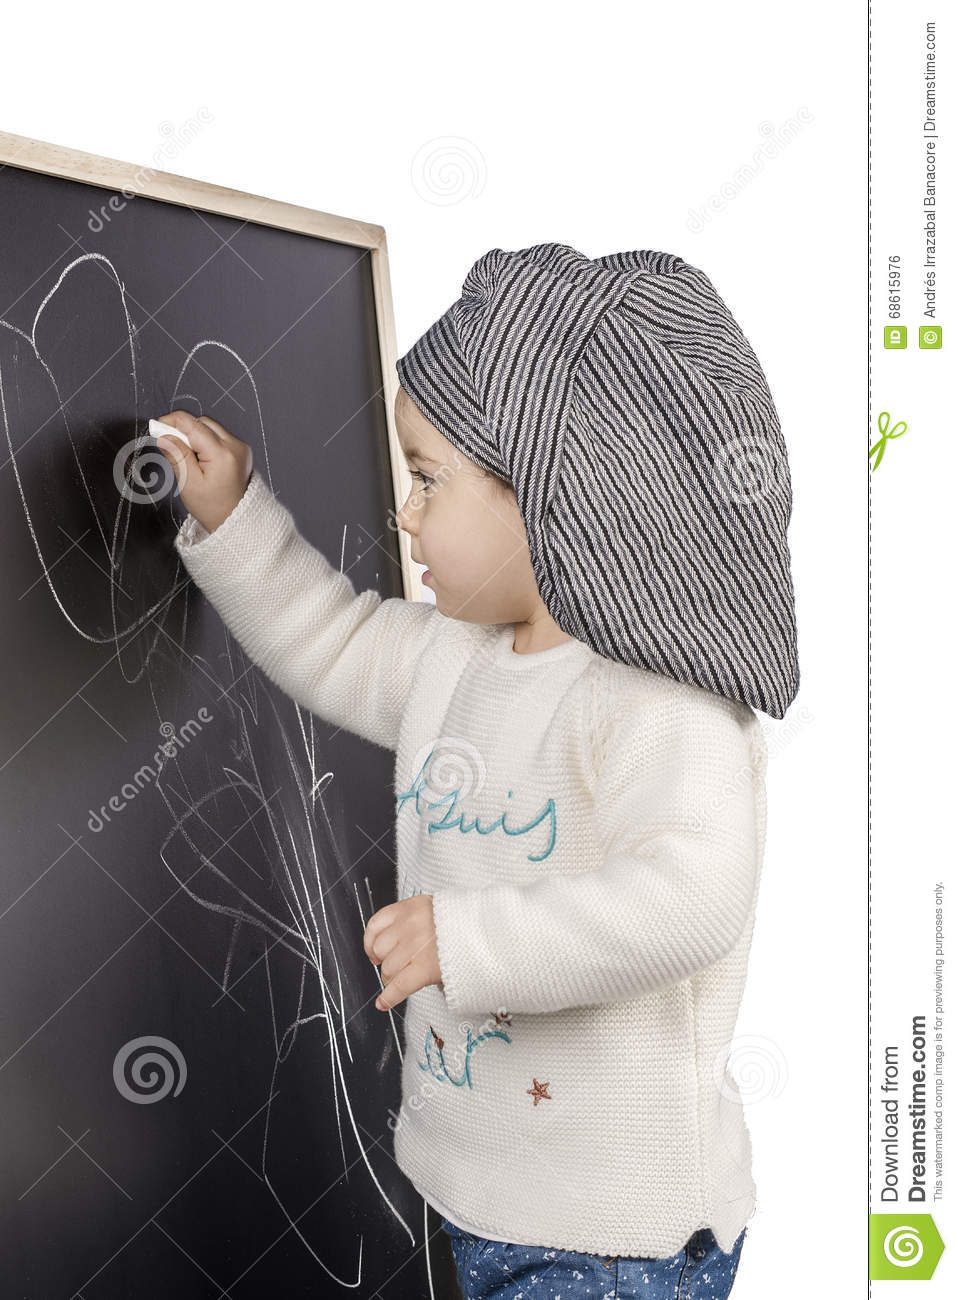 86009b853317 Baby Less Than Two Years Old Stock Photo - Image of caucasian ...